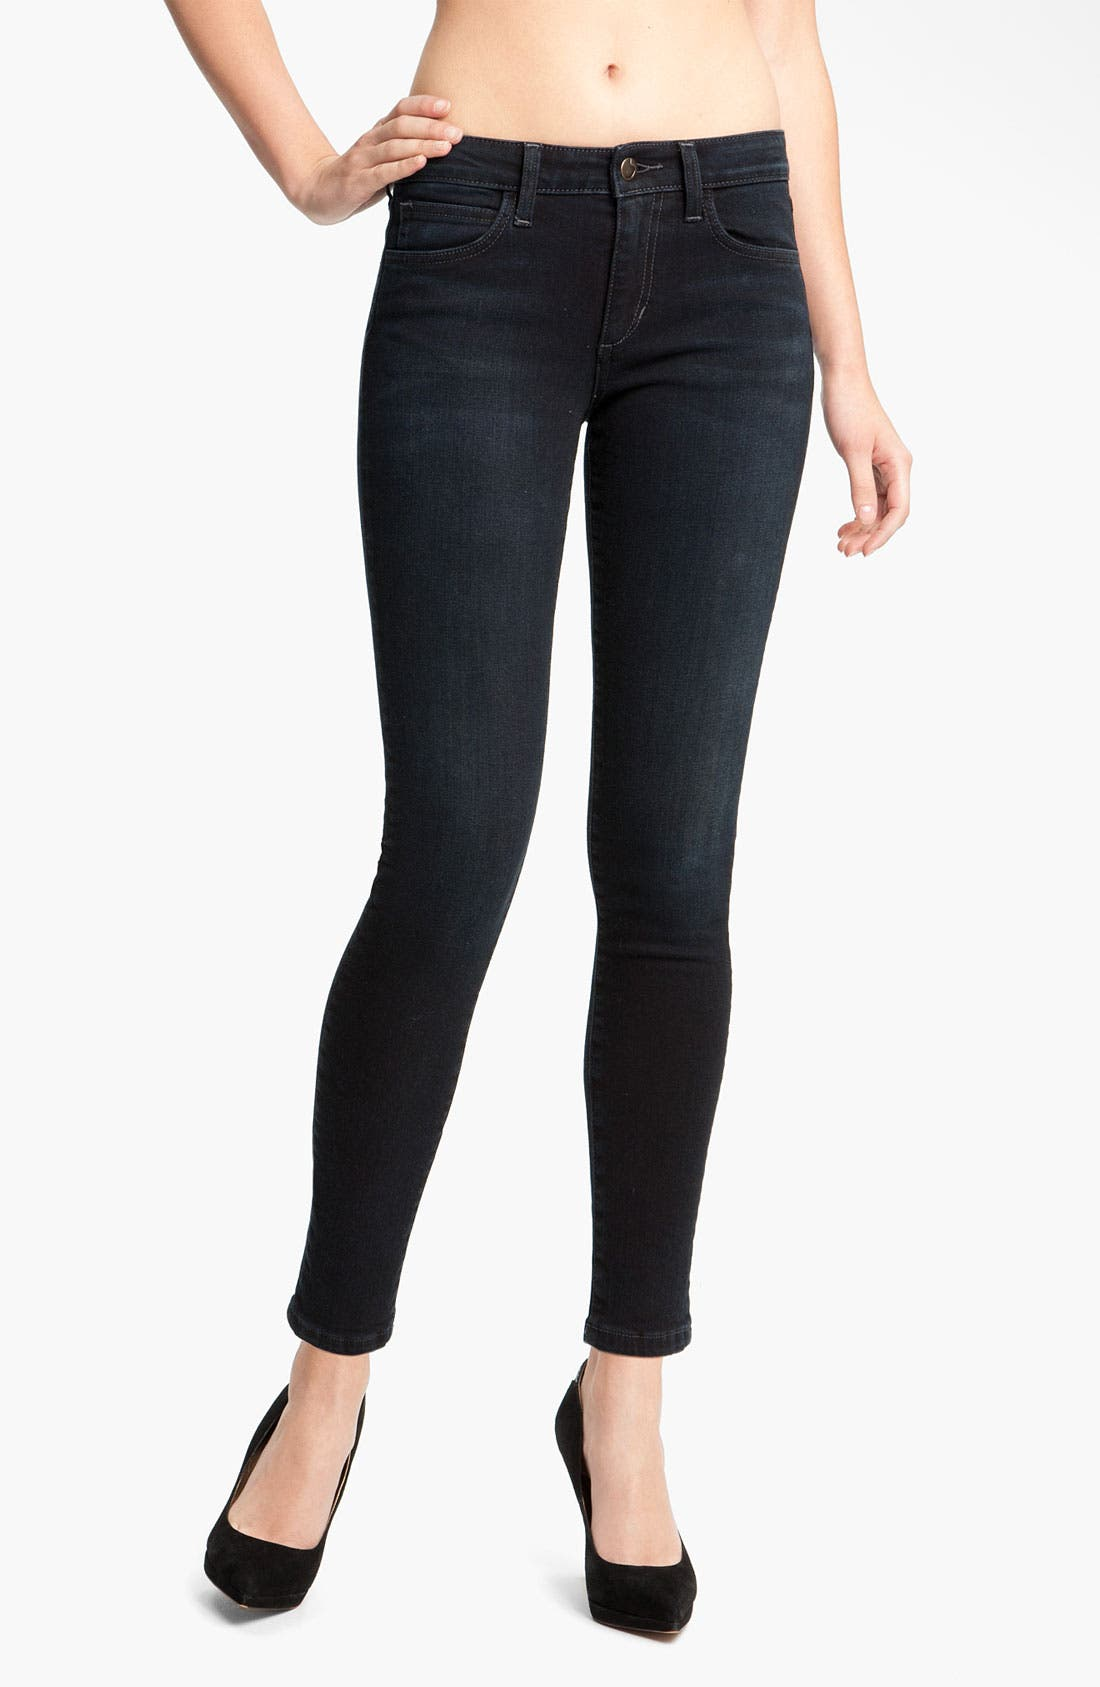 Main Image - Joe's Skinny Stretch Ankle Jeans (Tabitha Blue/Black)